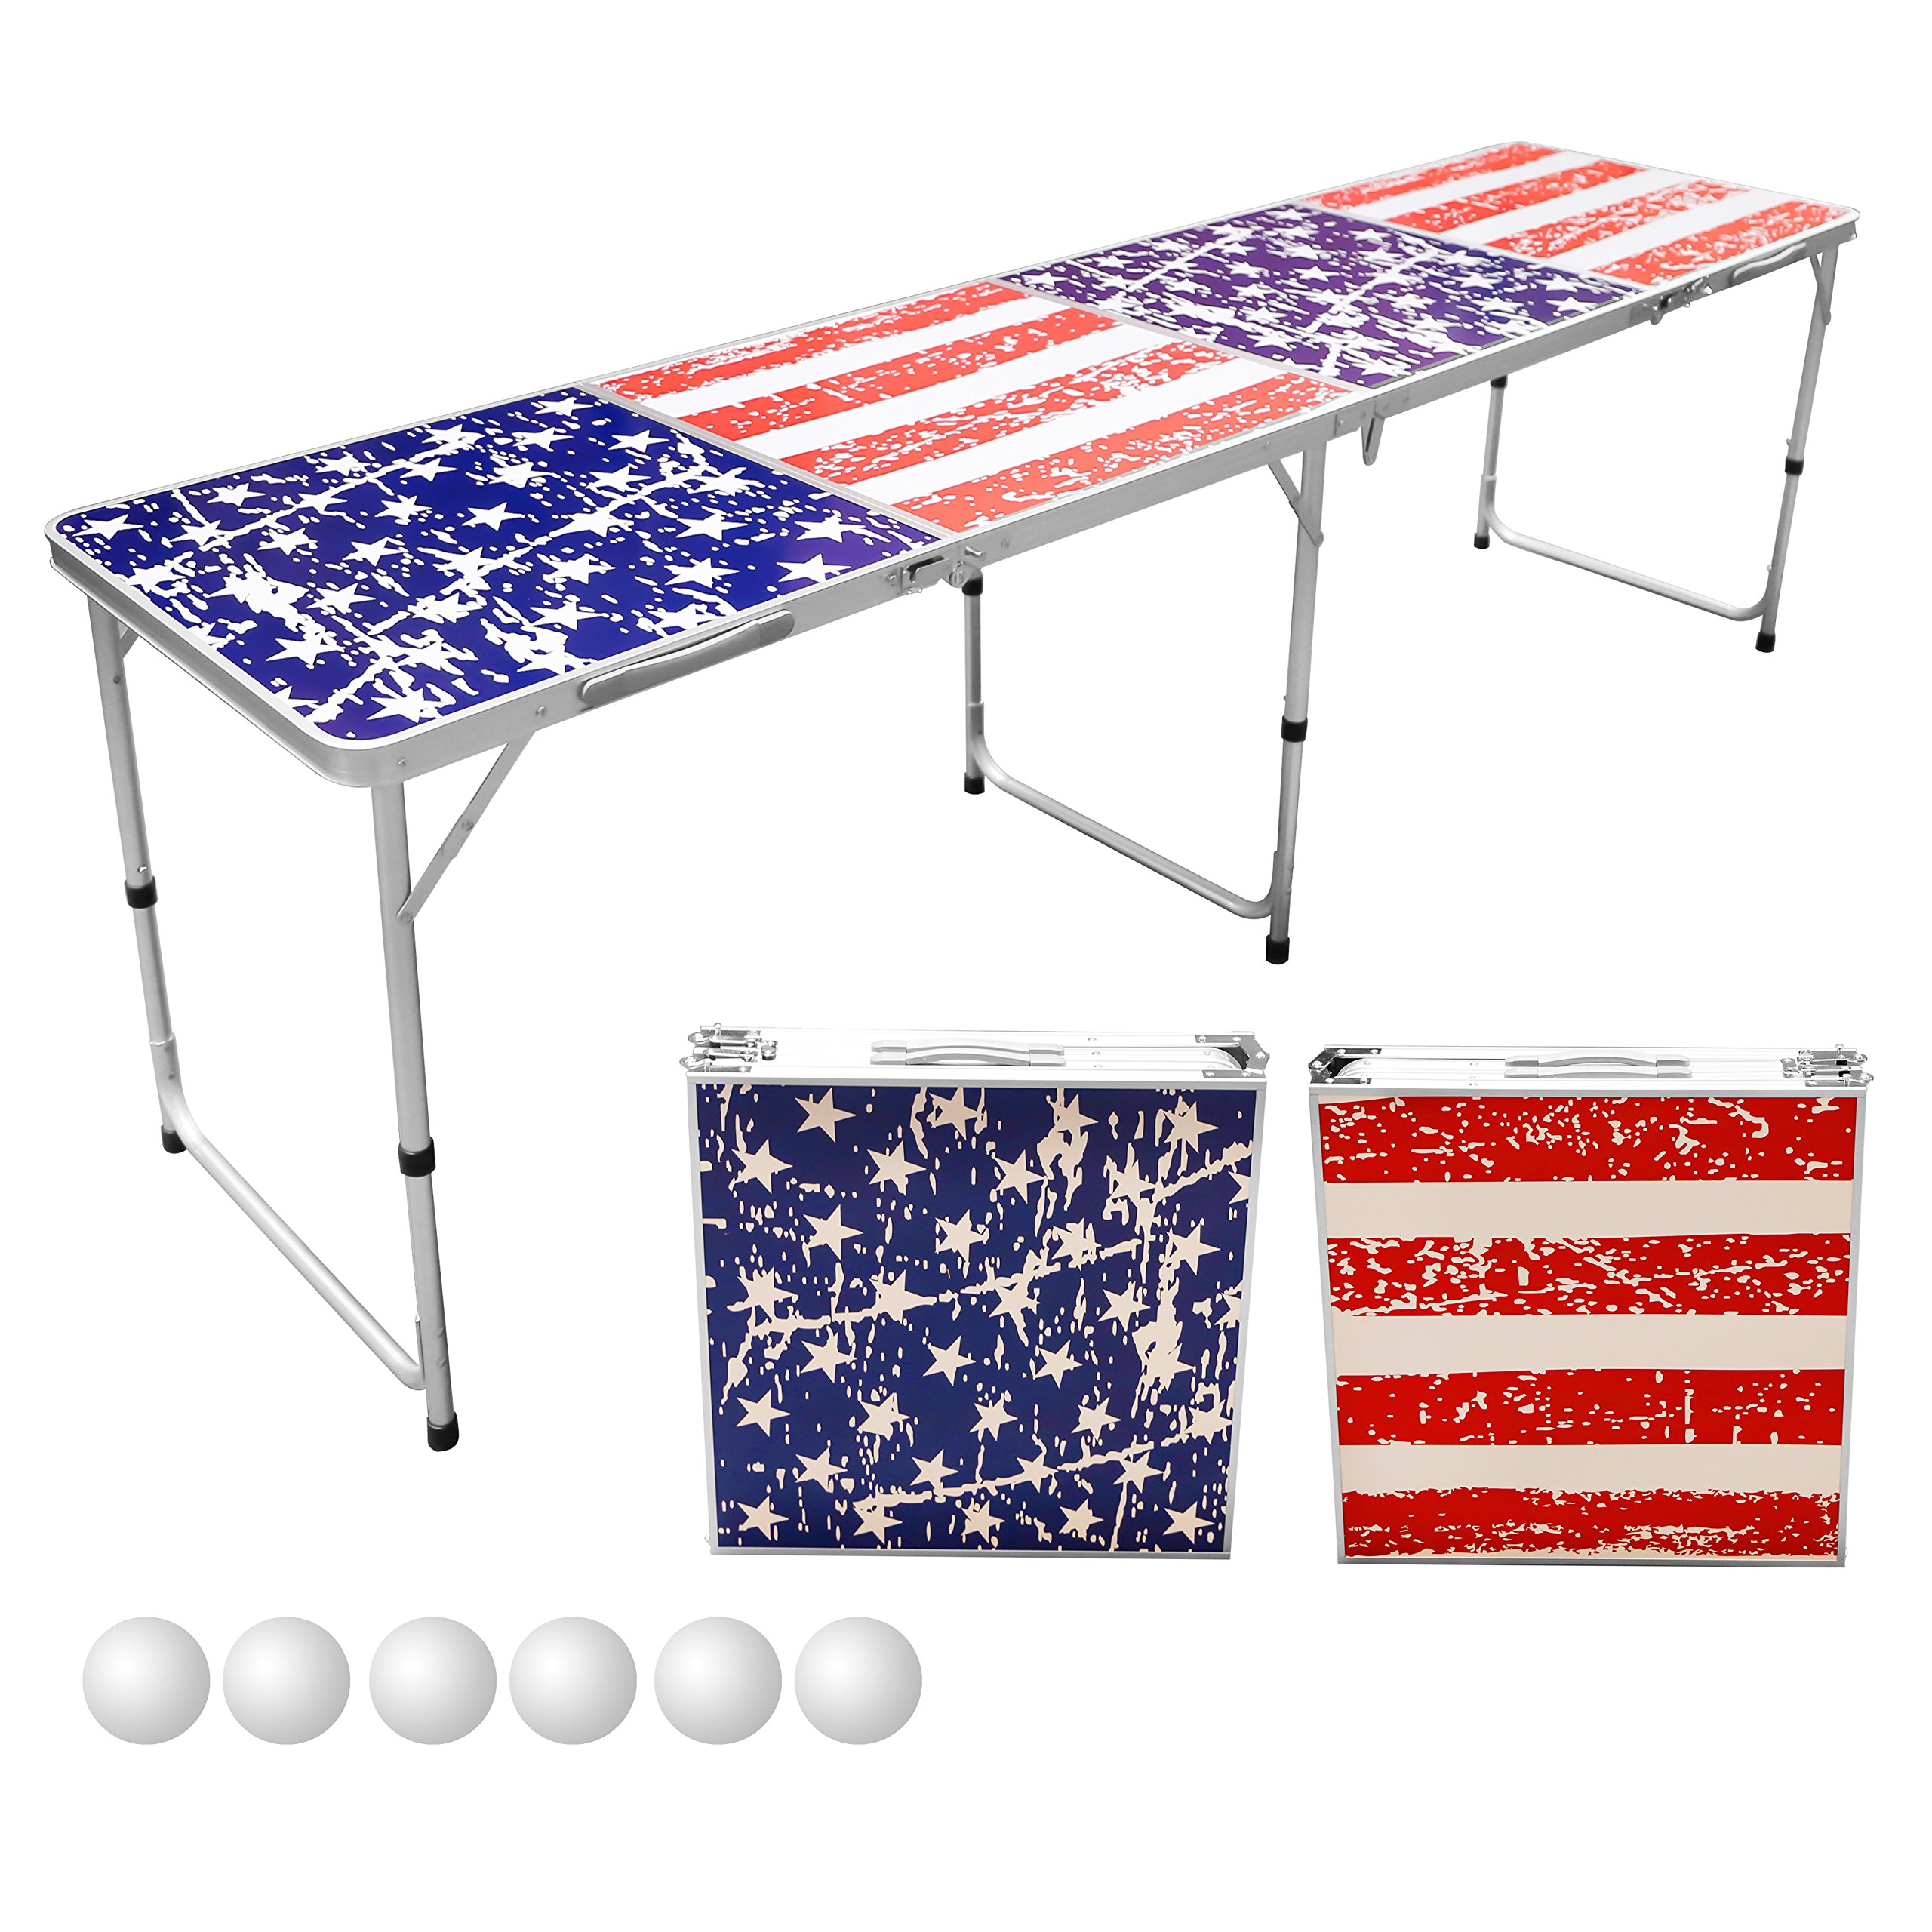 Sports Festival 8-Foot Portable Beer Pong (America Flag) by Unknown